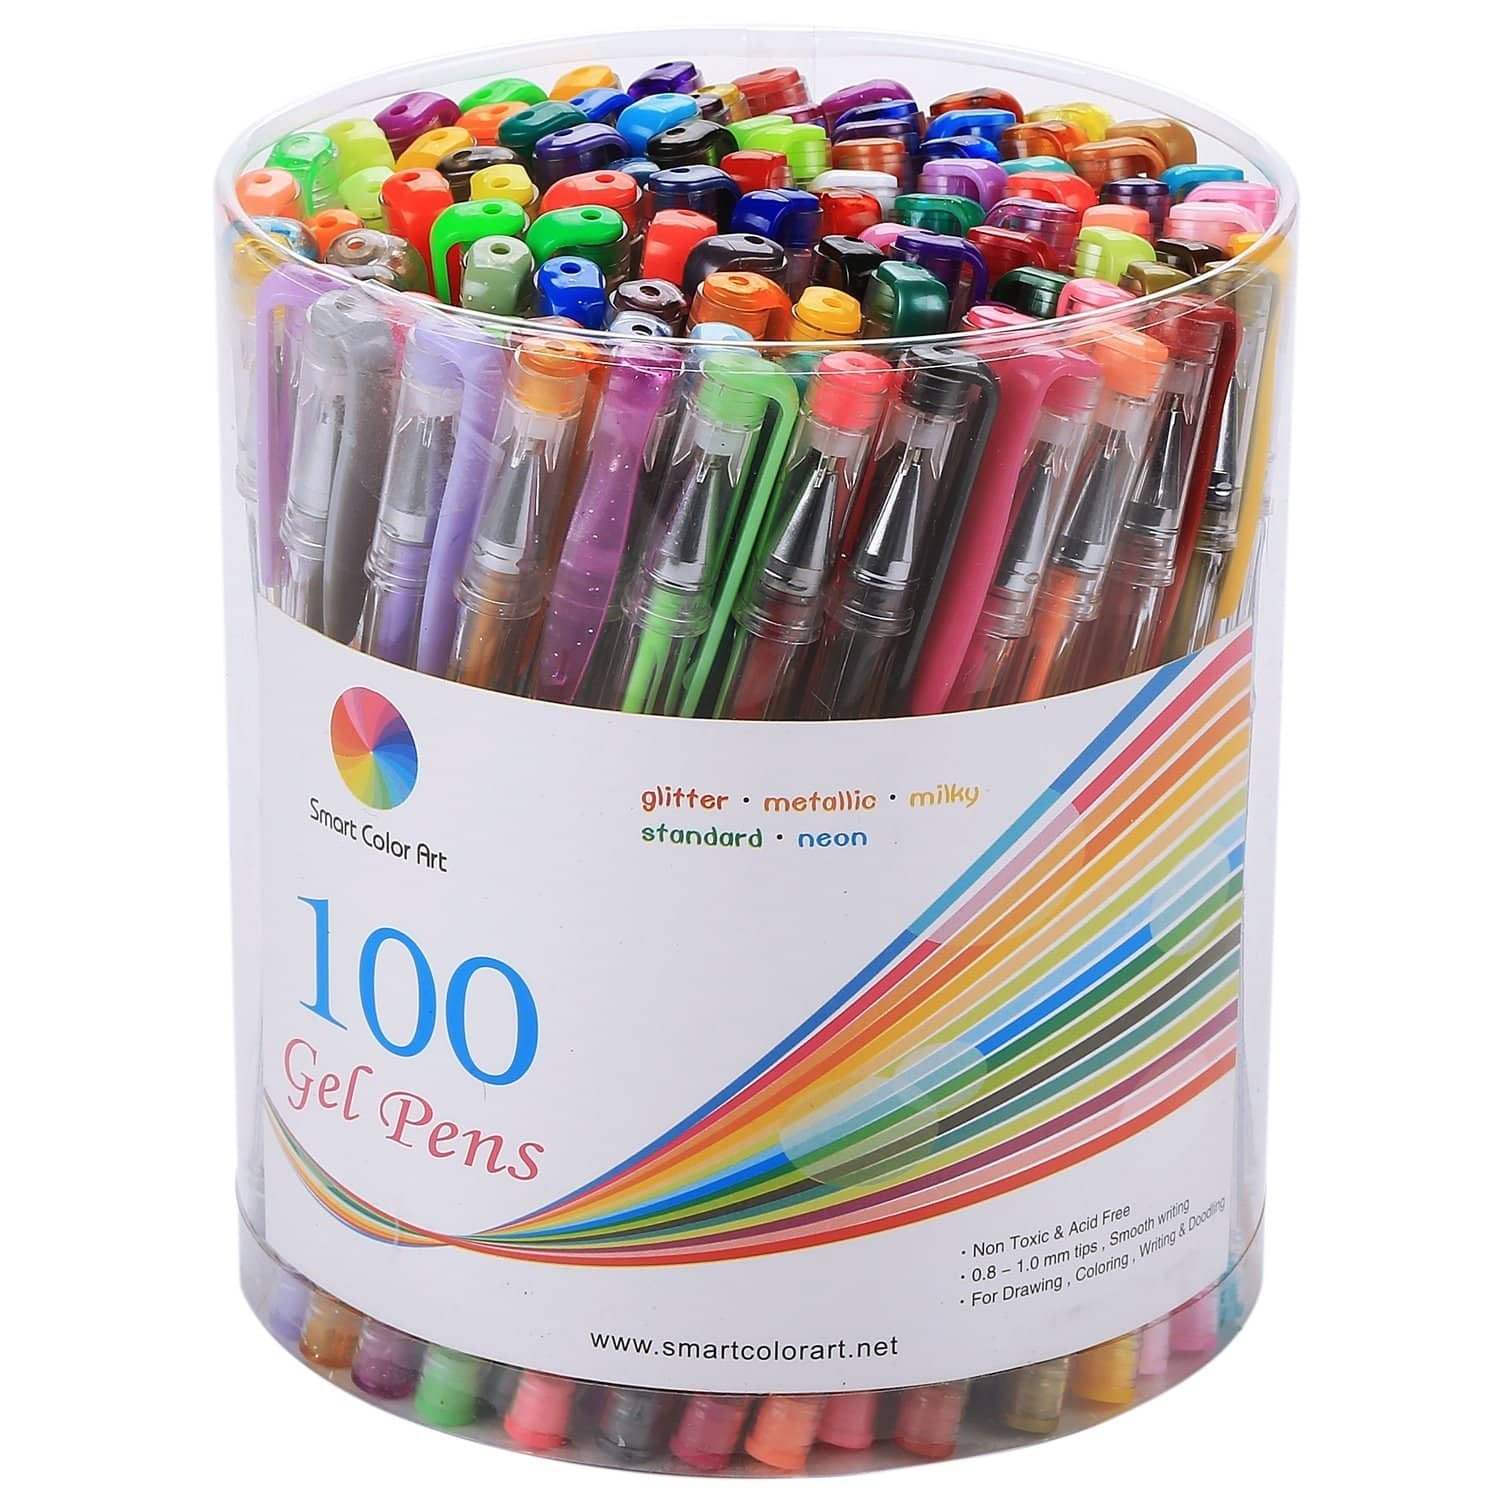 Smart Color Art 100 Colors Gel Pens Set for Adult Coloring Books Drawing Painting Writing for $13.97 @amazon